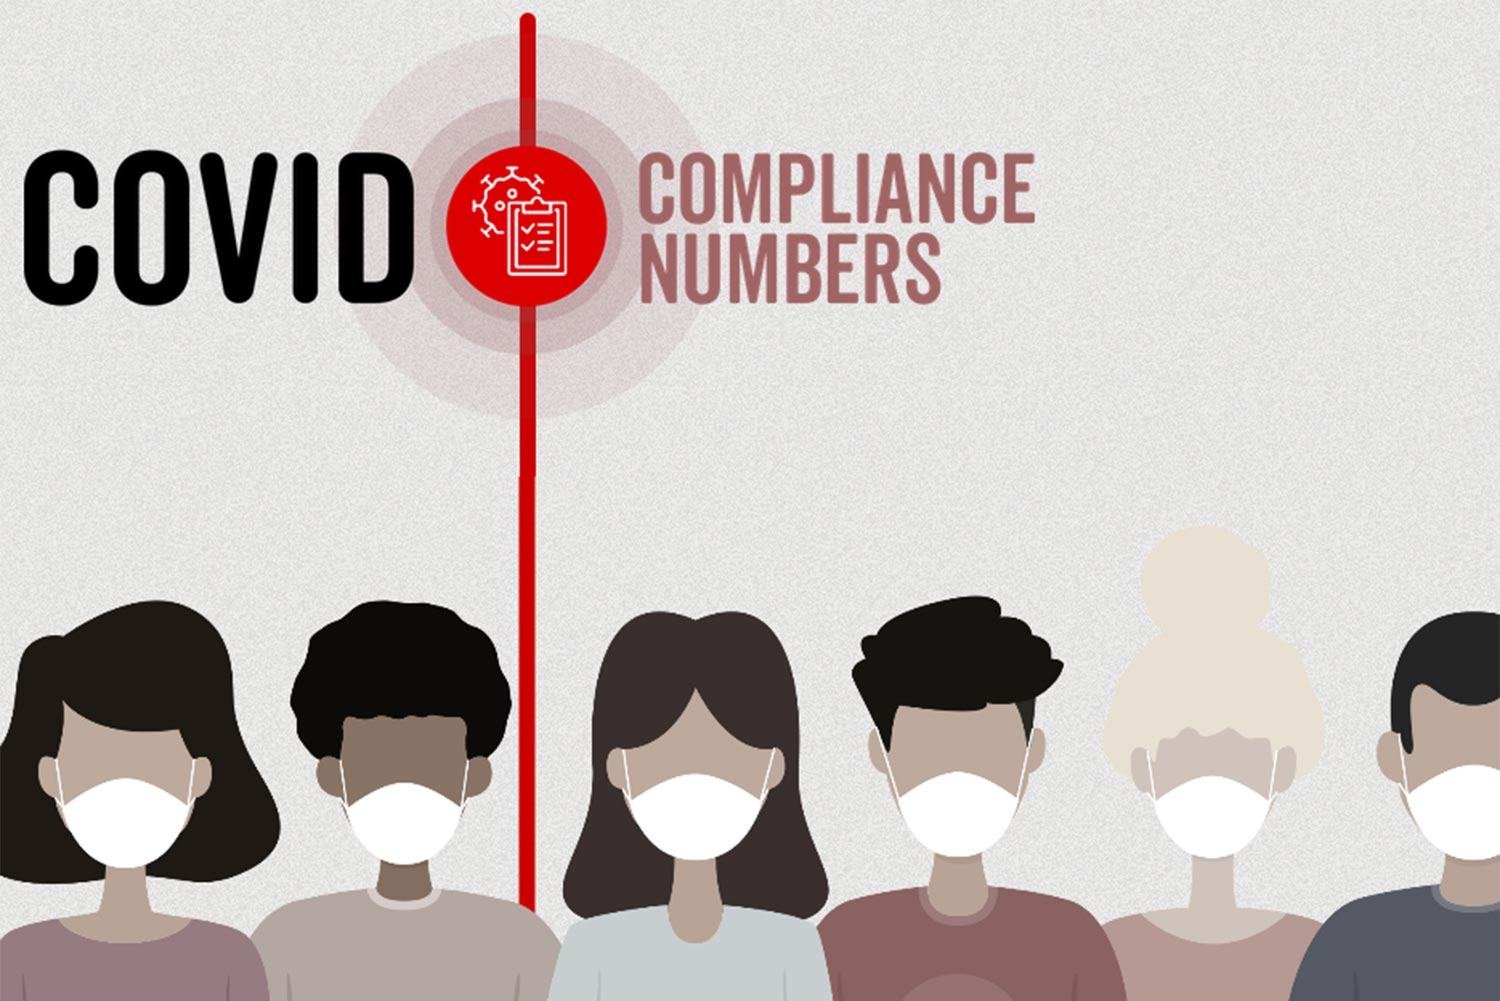 illustration of young adults wearing medical face masks. text embedded on the image says 'COVID Compliance Numbers'